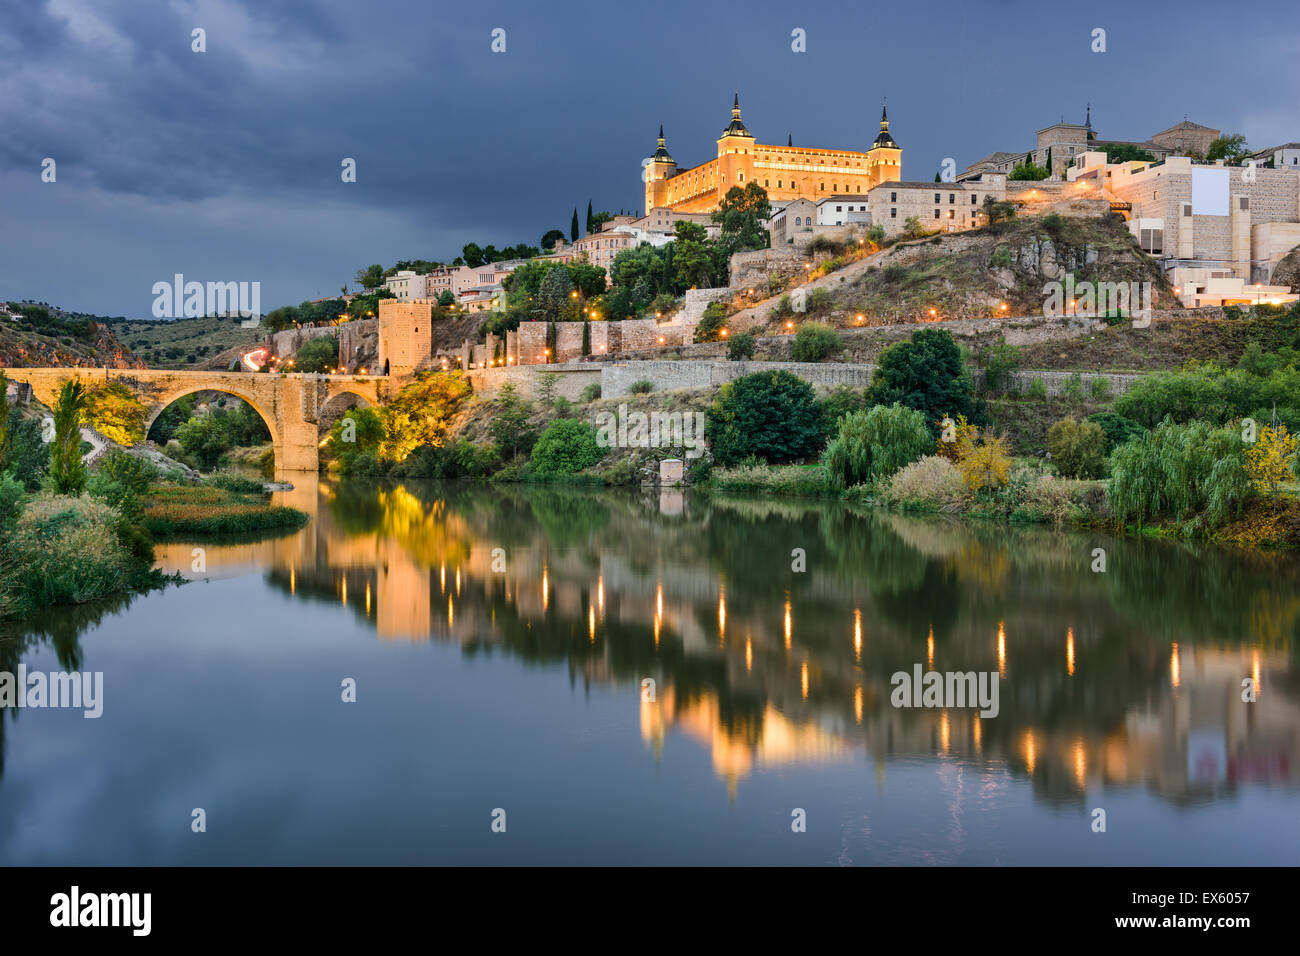 Toledo, Spain on the Tagus River. - Stock Image